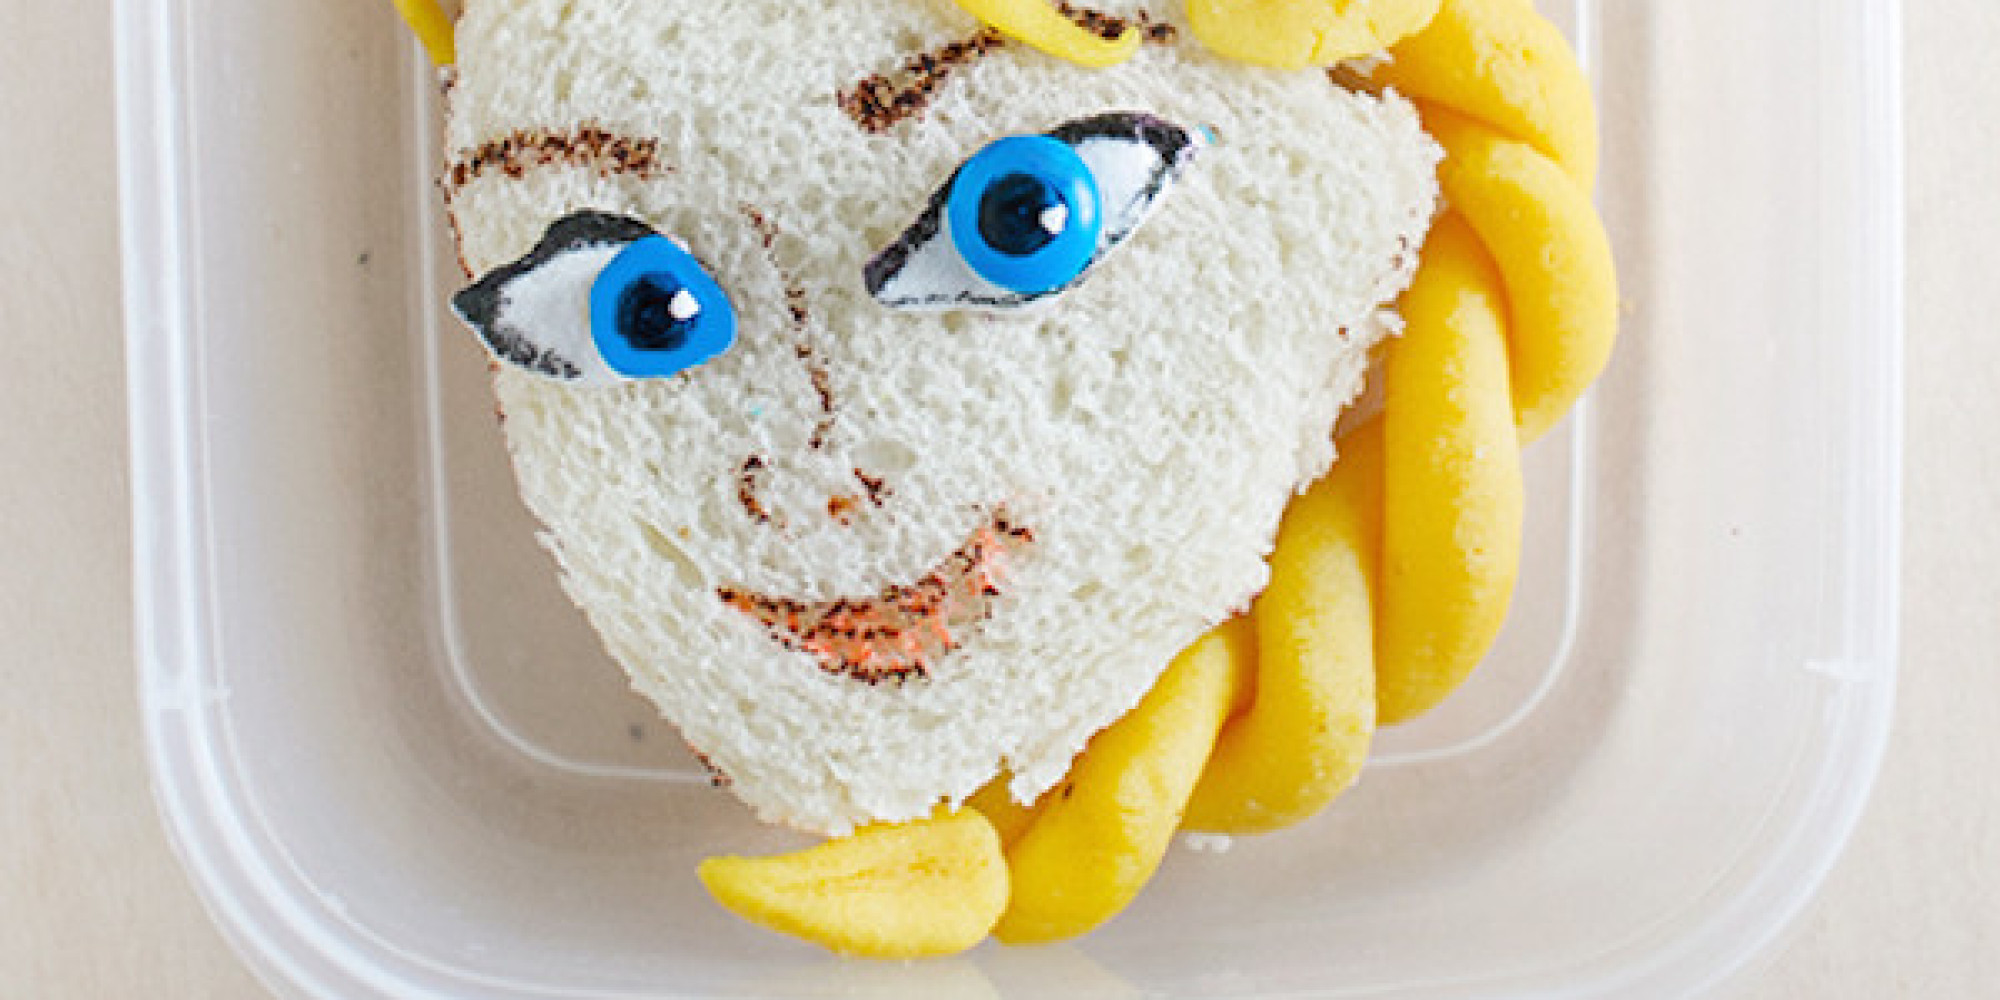 13 Wildly Creative Lunches We Dare You To Make At Home | HuffPost